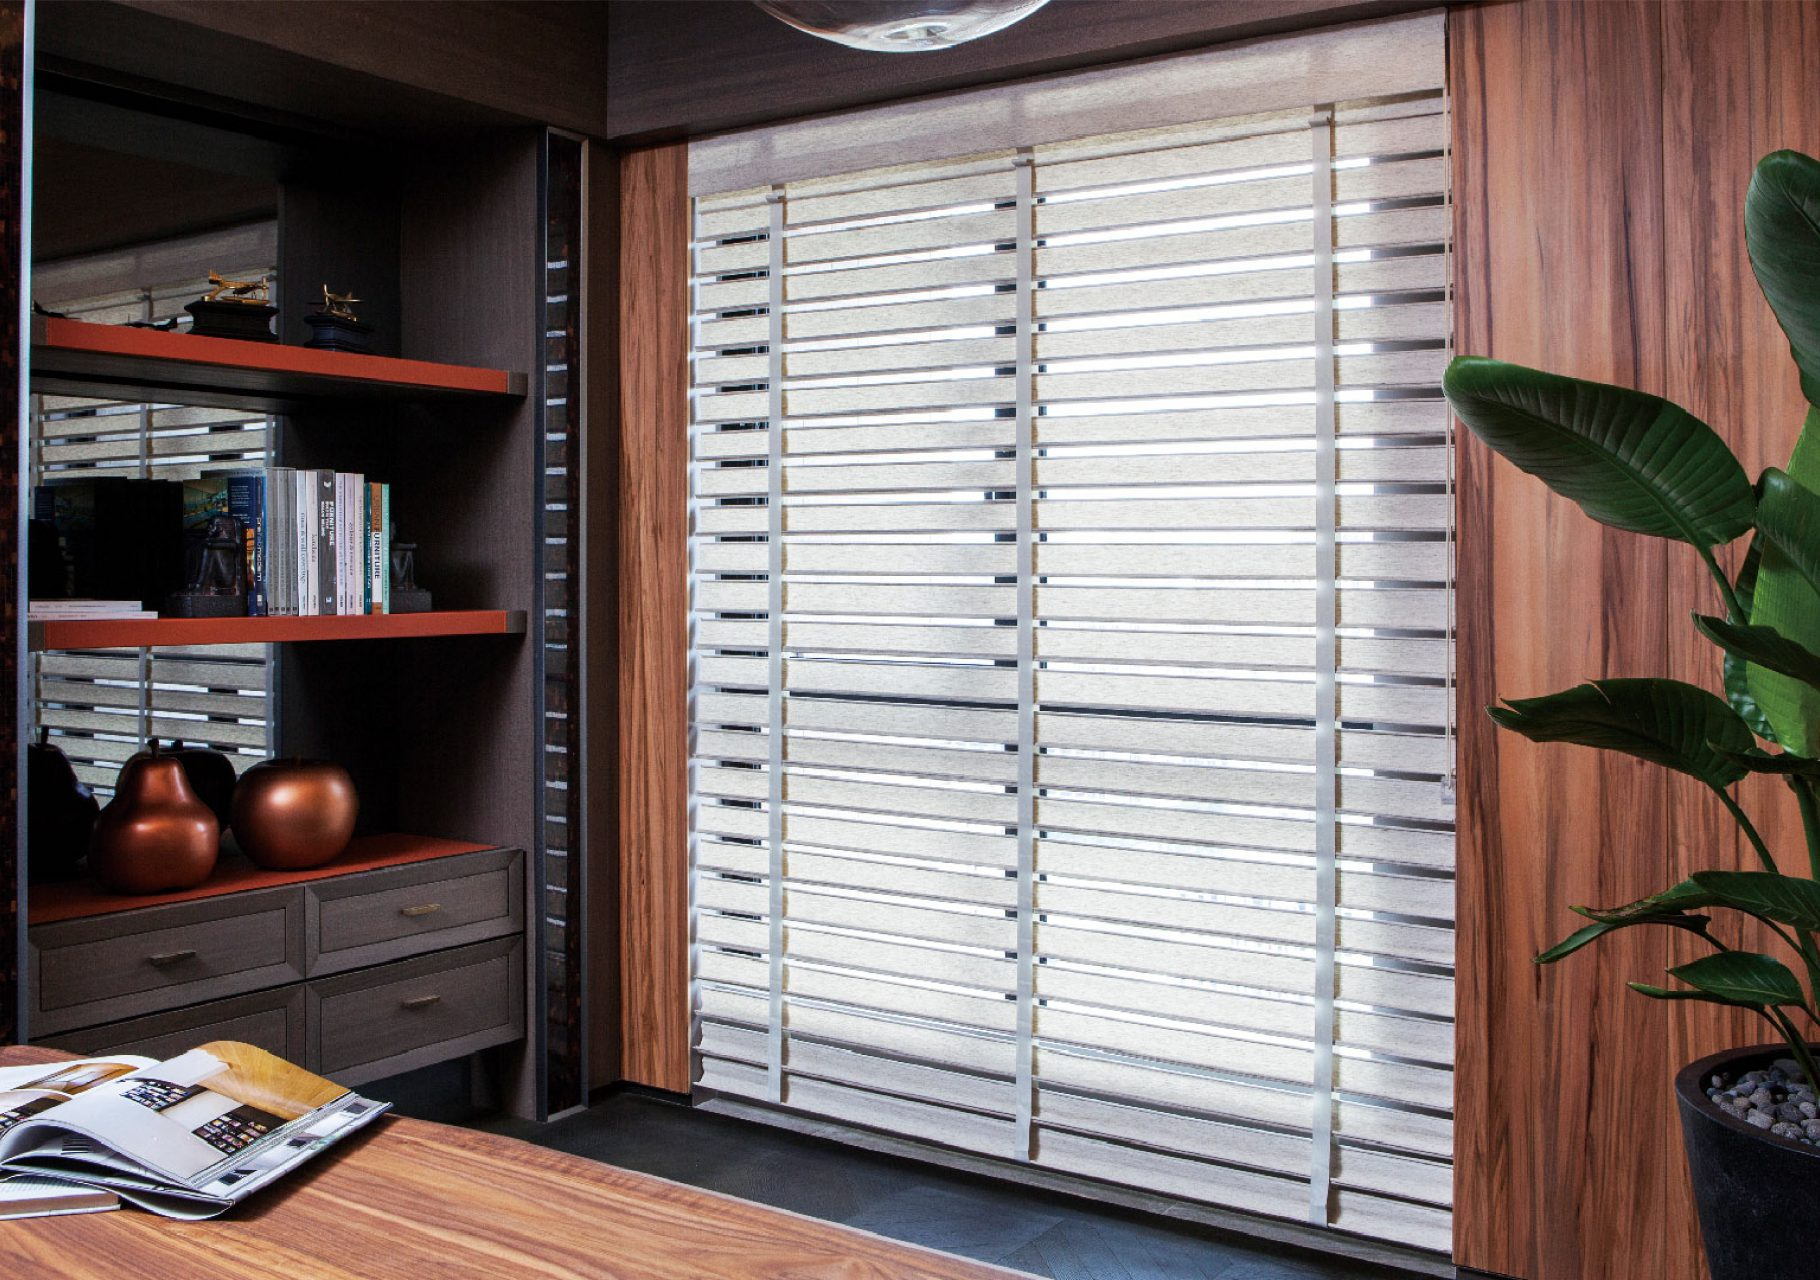 BelleVue™ Shades for the home office